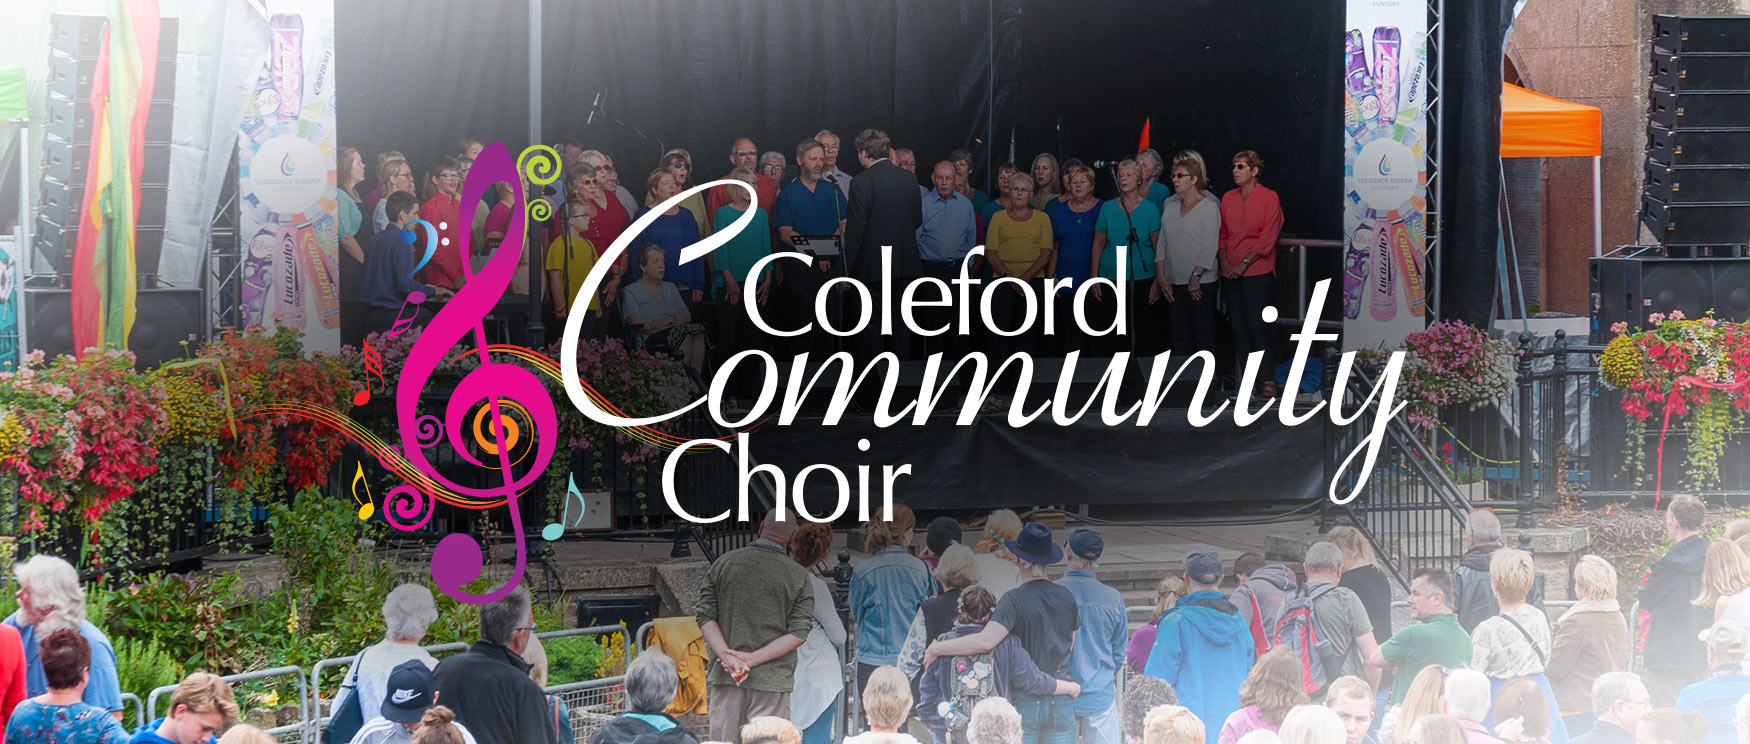 Coleford Community Choir at Coleford Music Festival 2017